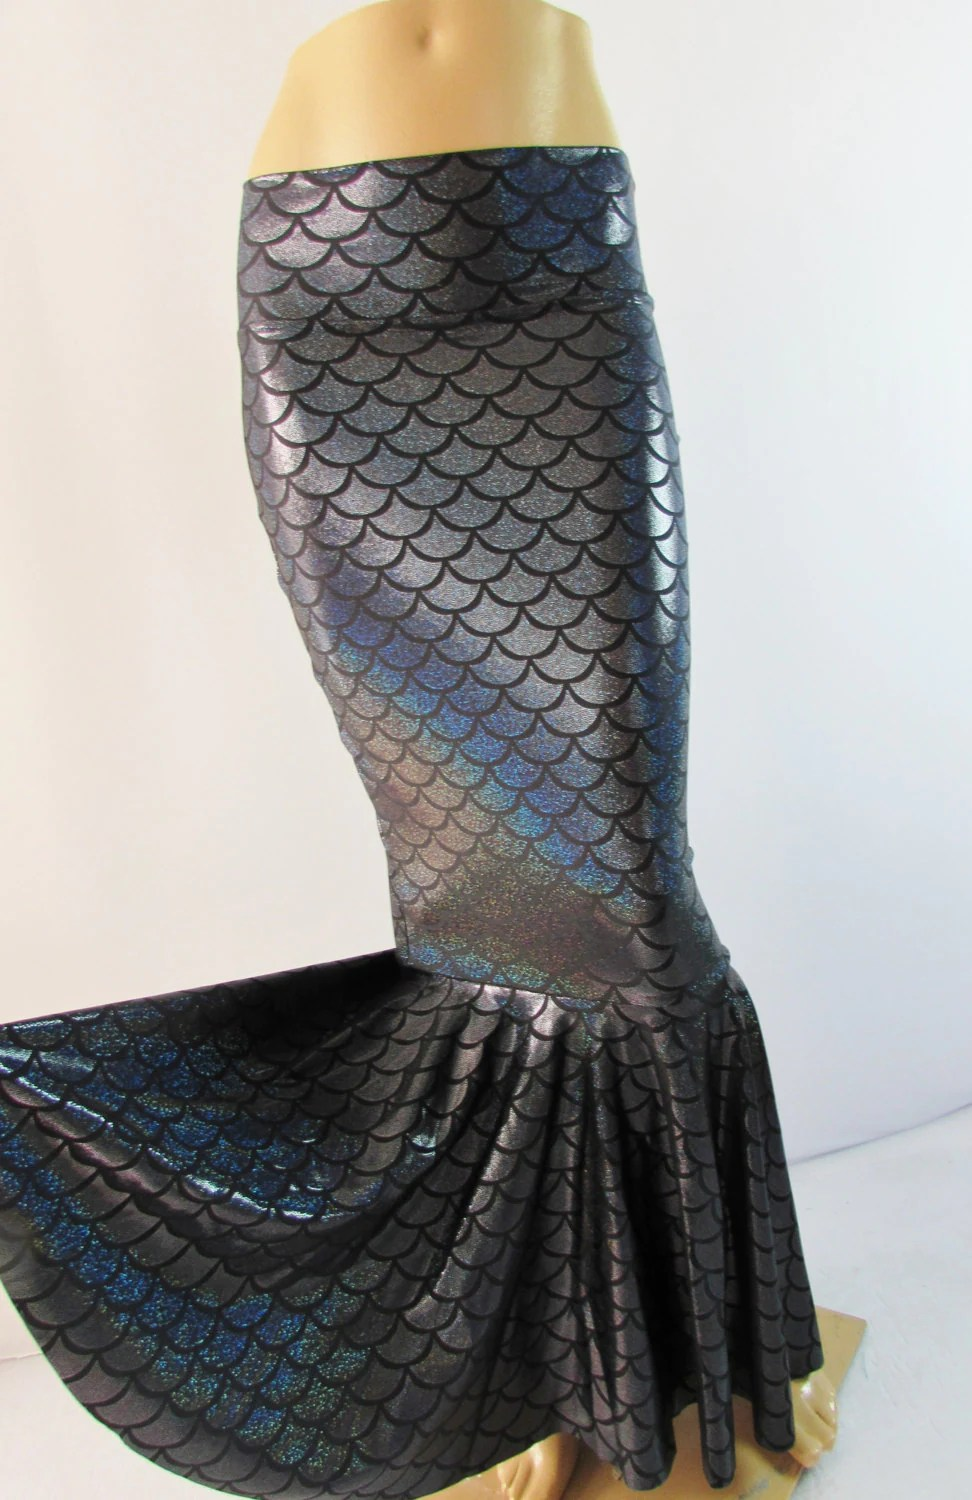 Black Mermaid Scale Skirt Stretch Costume Party